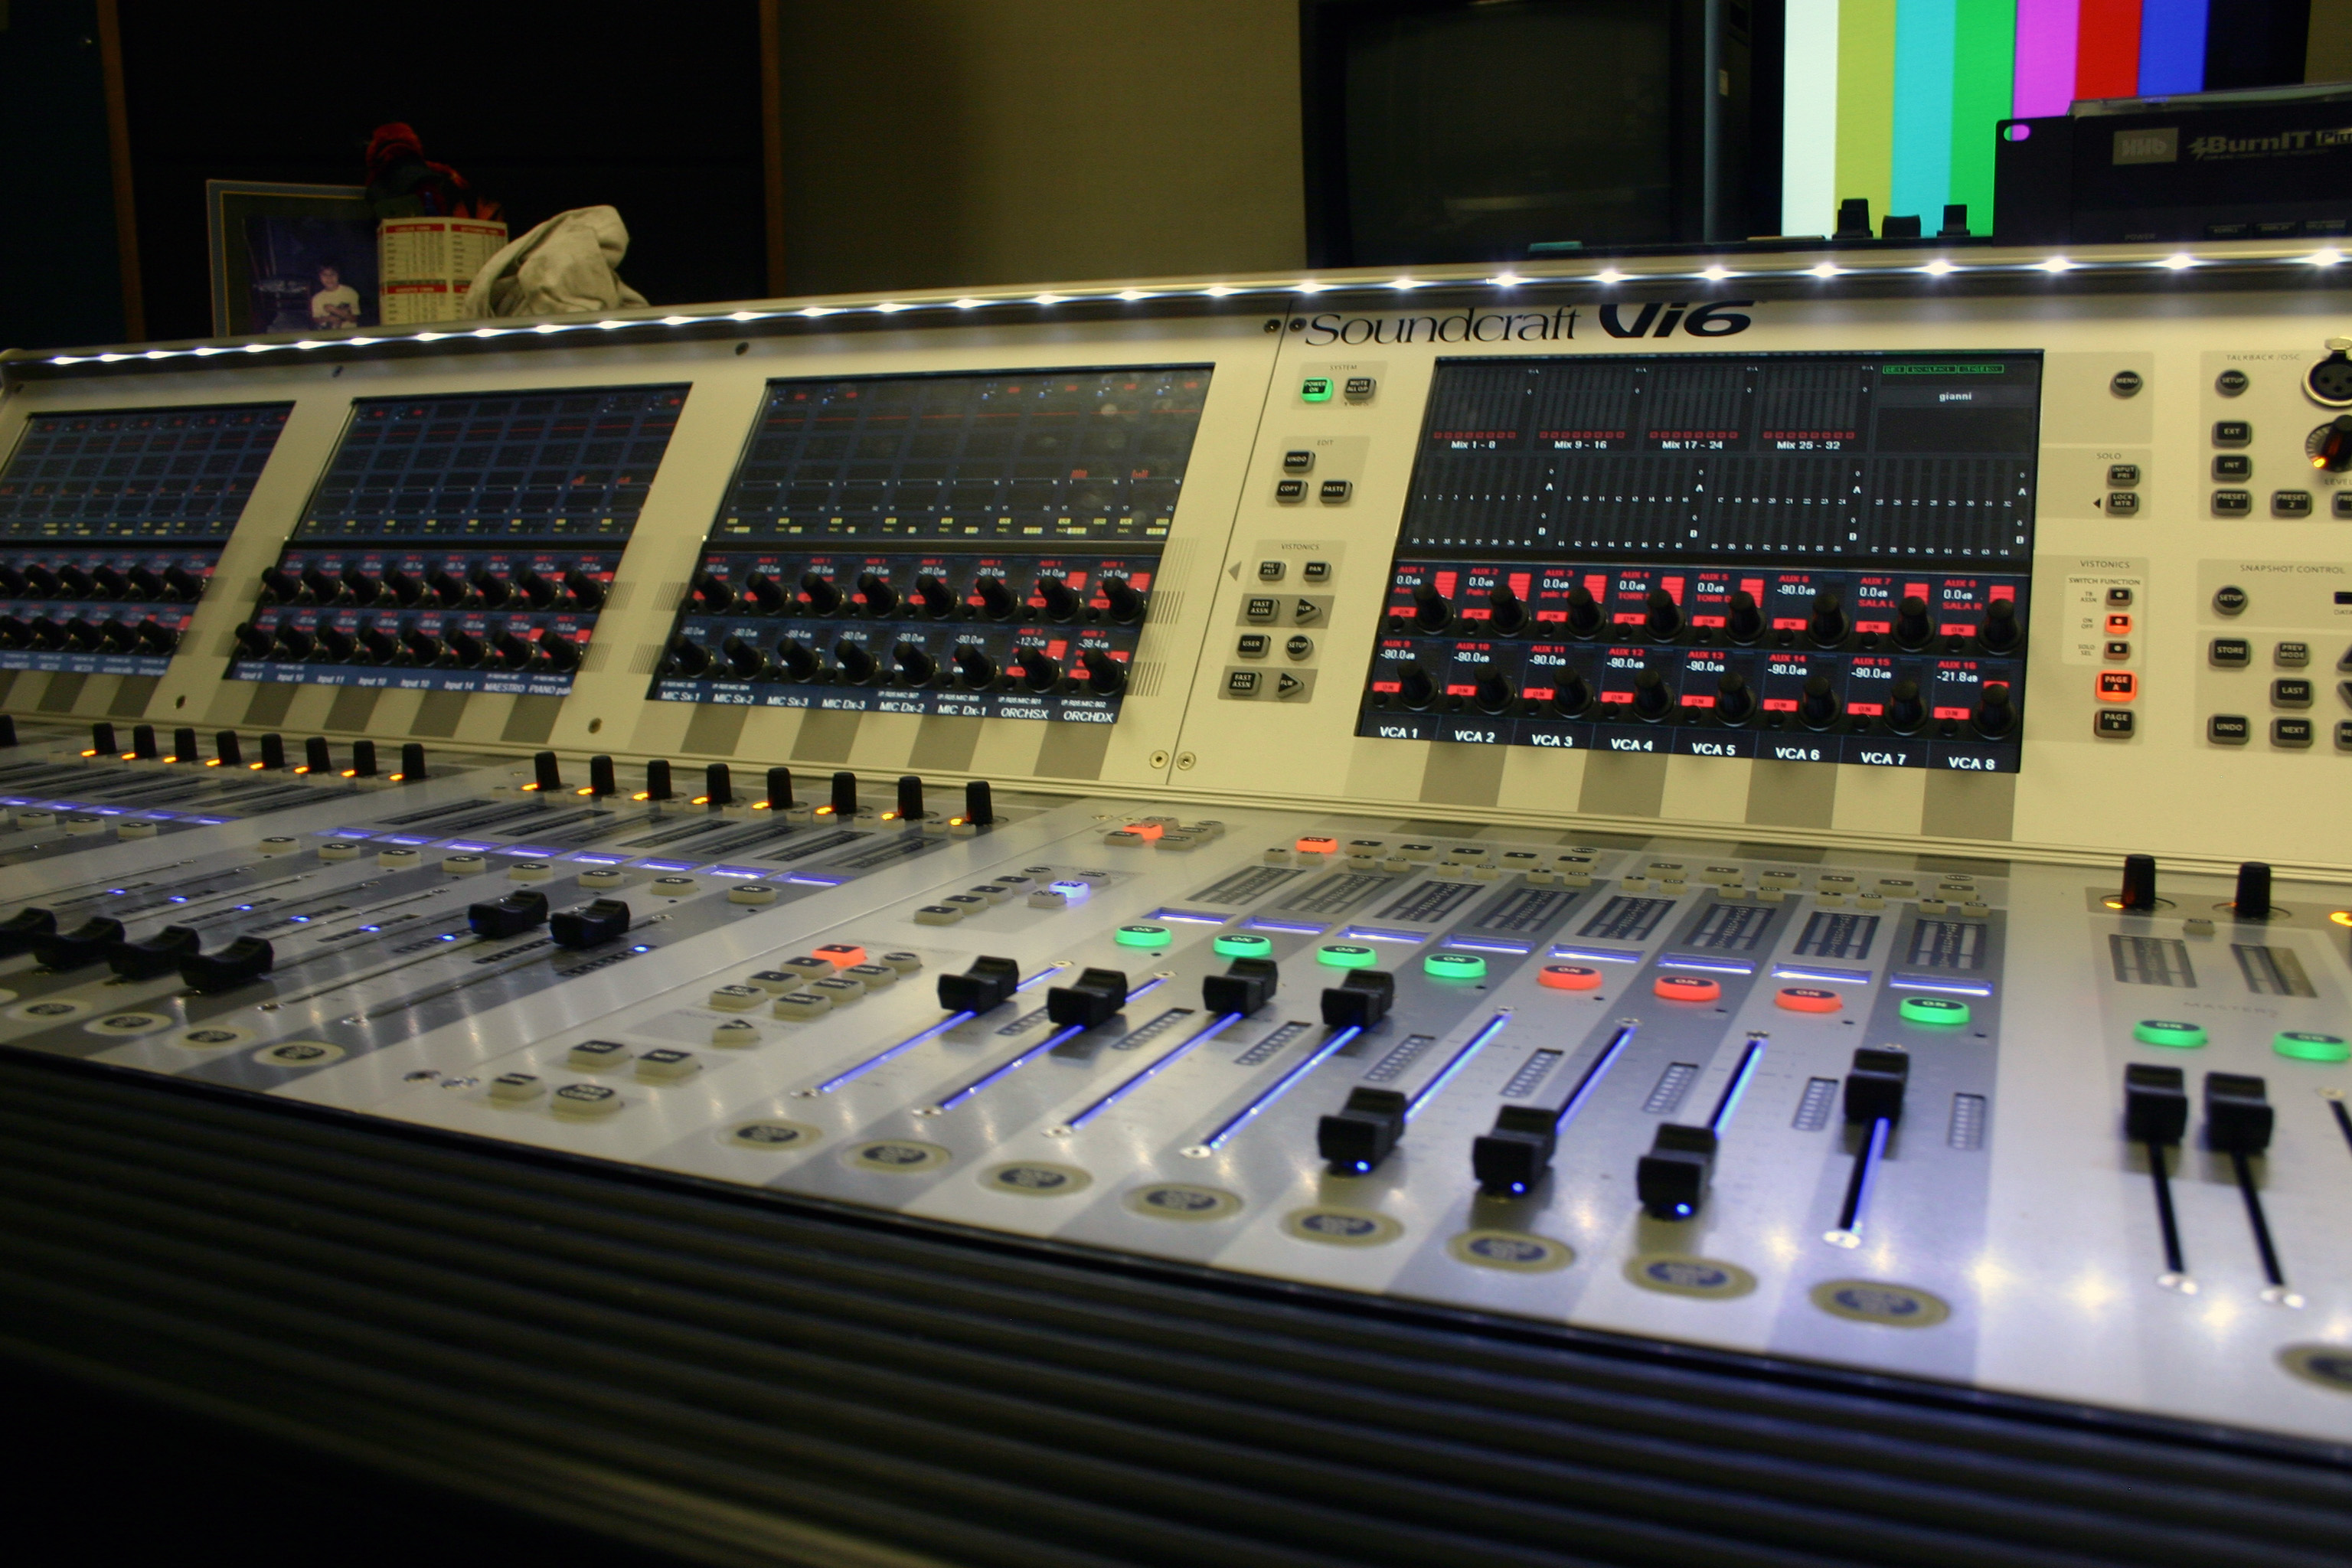 The big audio digital mixer wchich controls all audio signals coming from or going to the auditorium